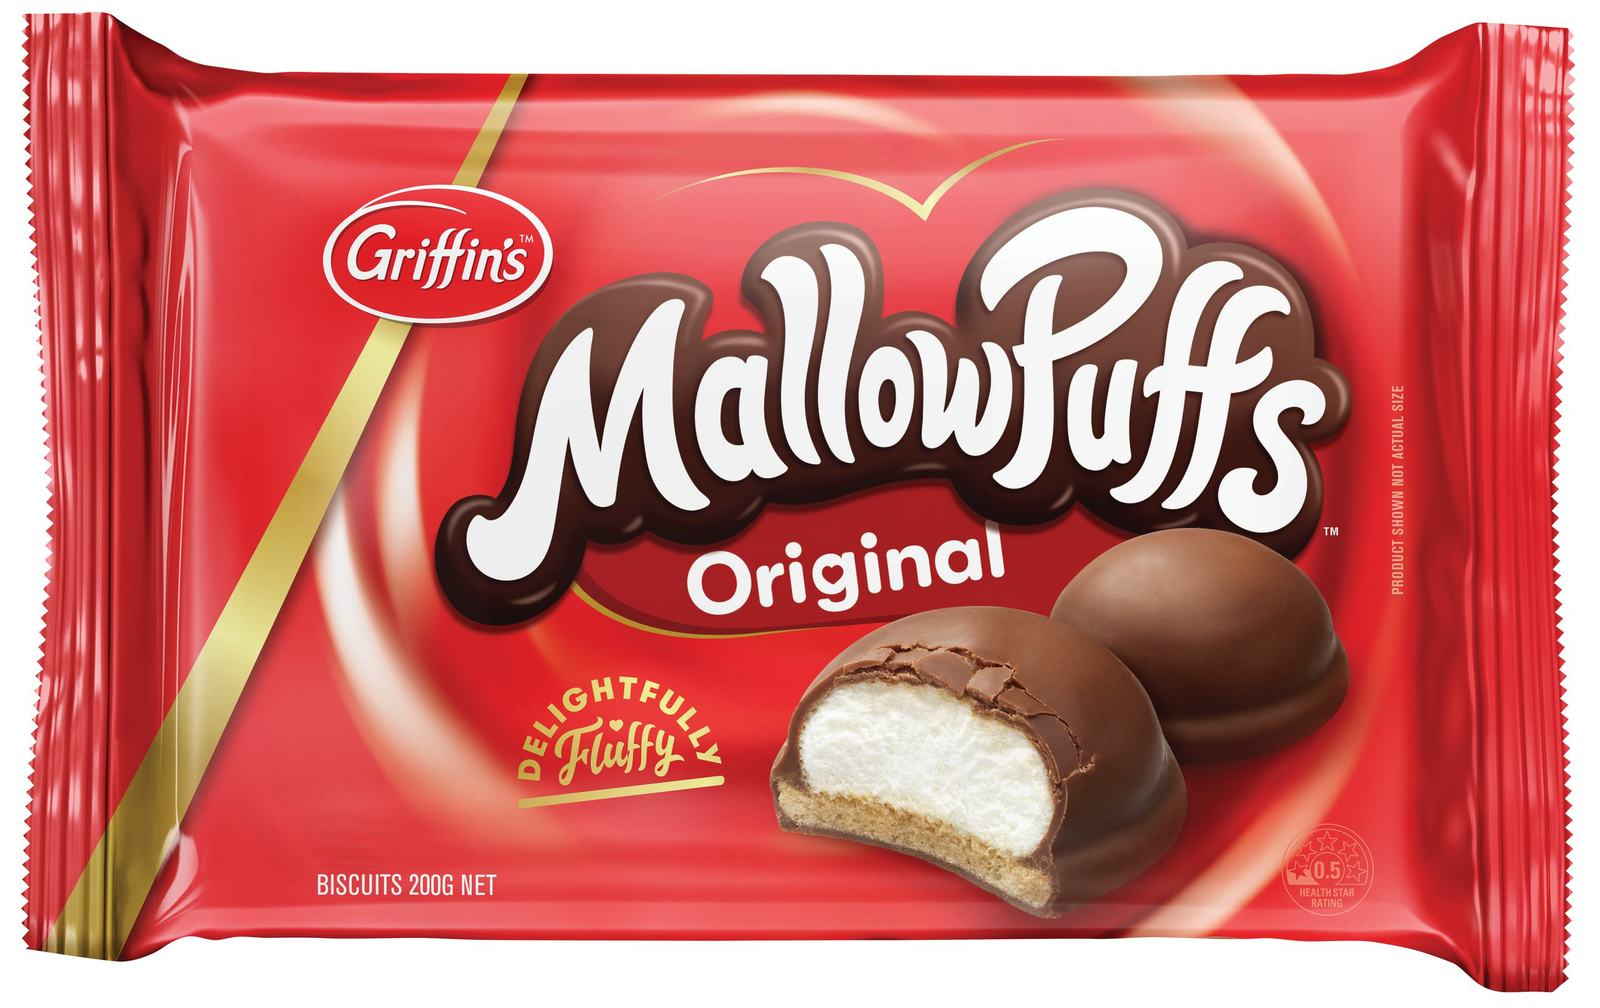 Griffins Chocolate MallowPuffs (200g) image